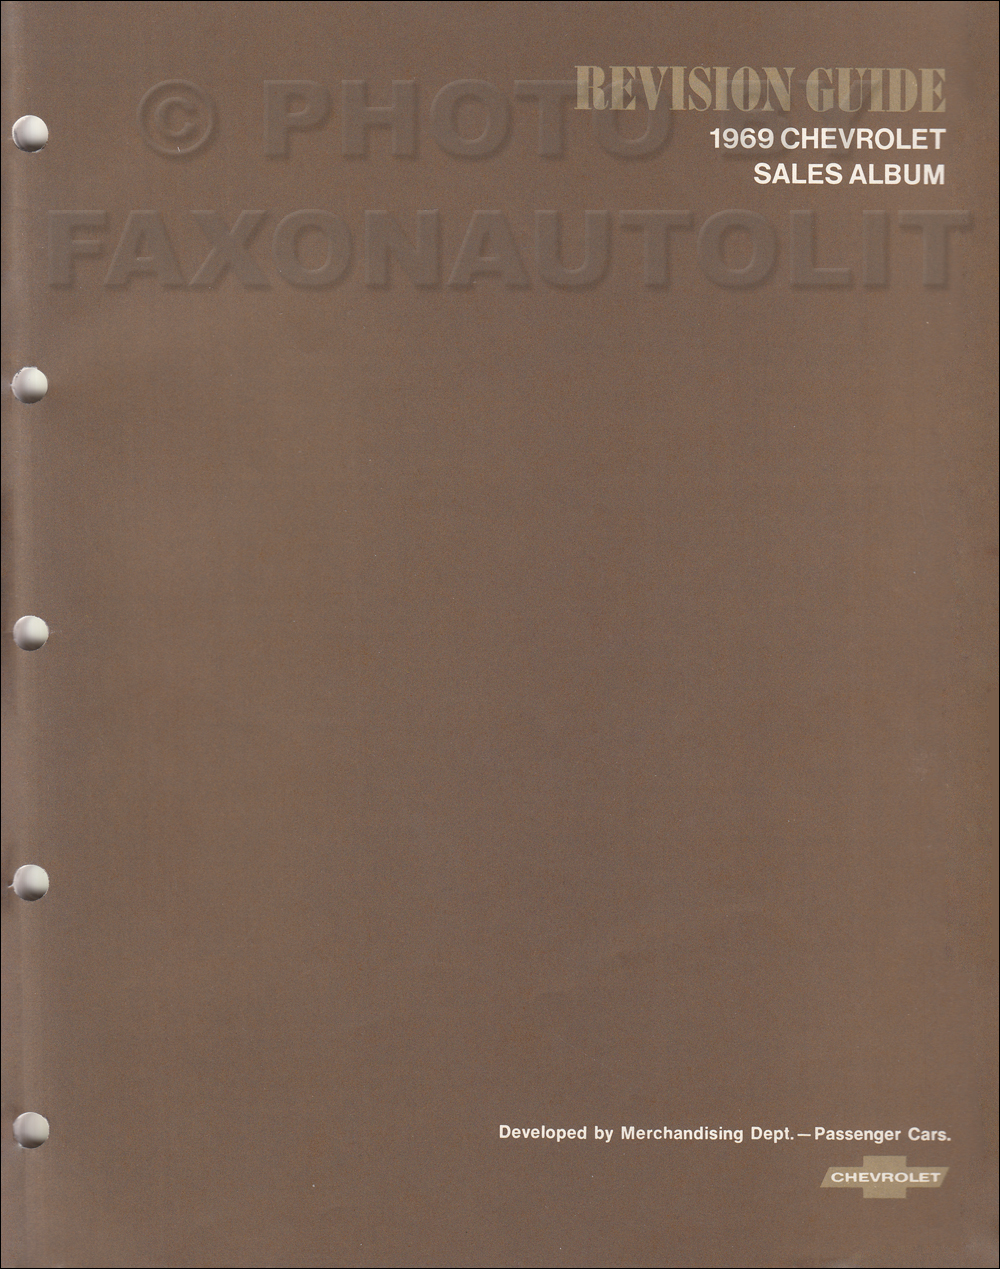 1969 Chevrolet Dealer Album Revision Guide Original